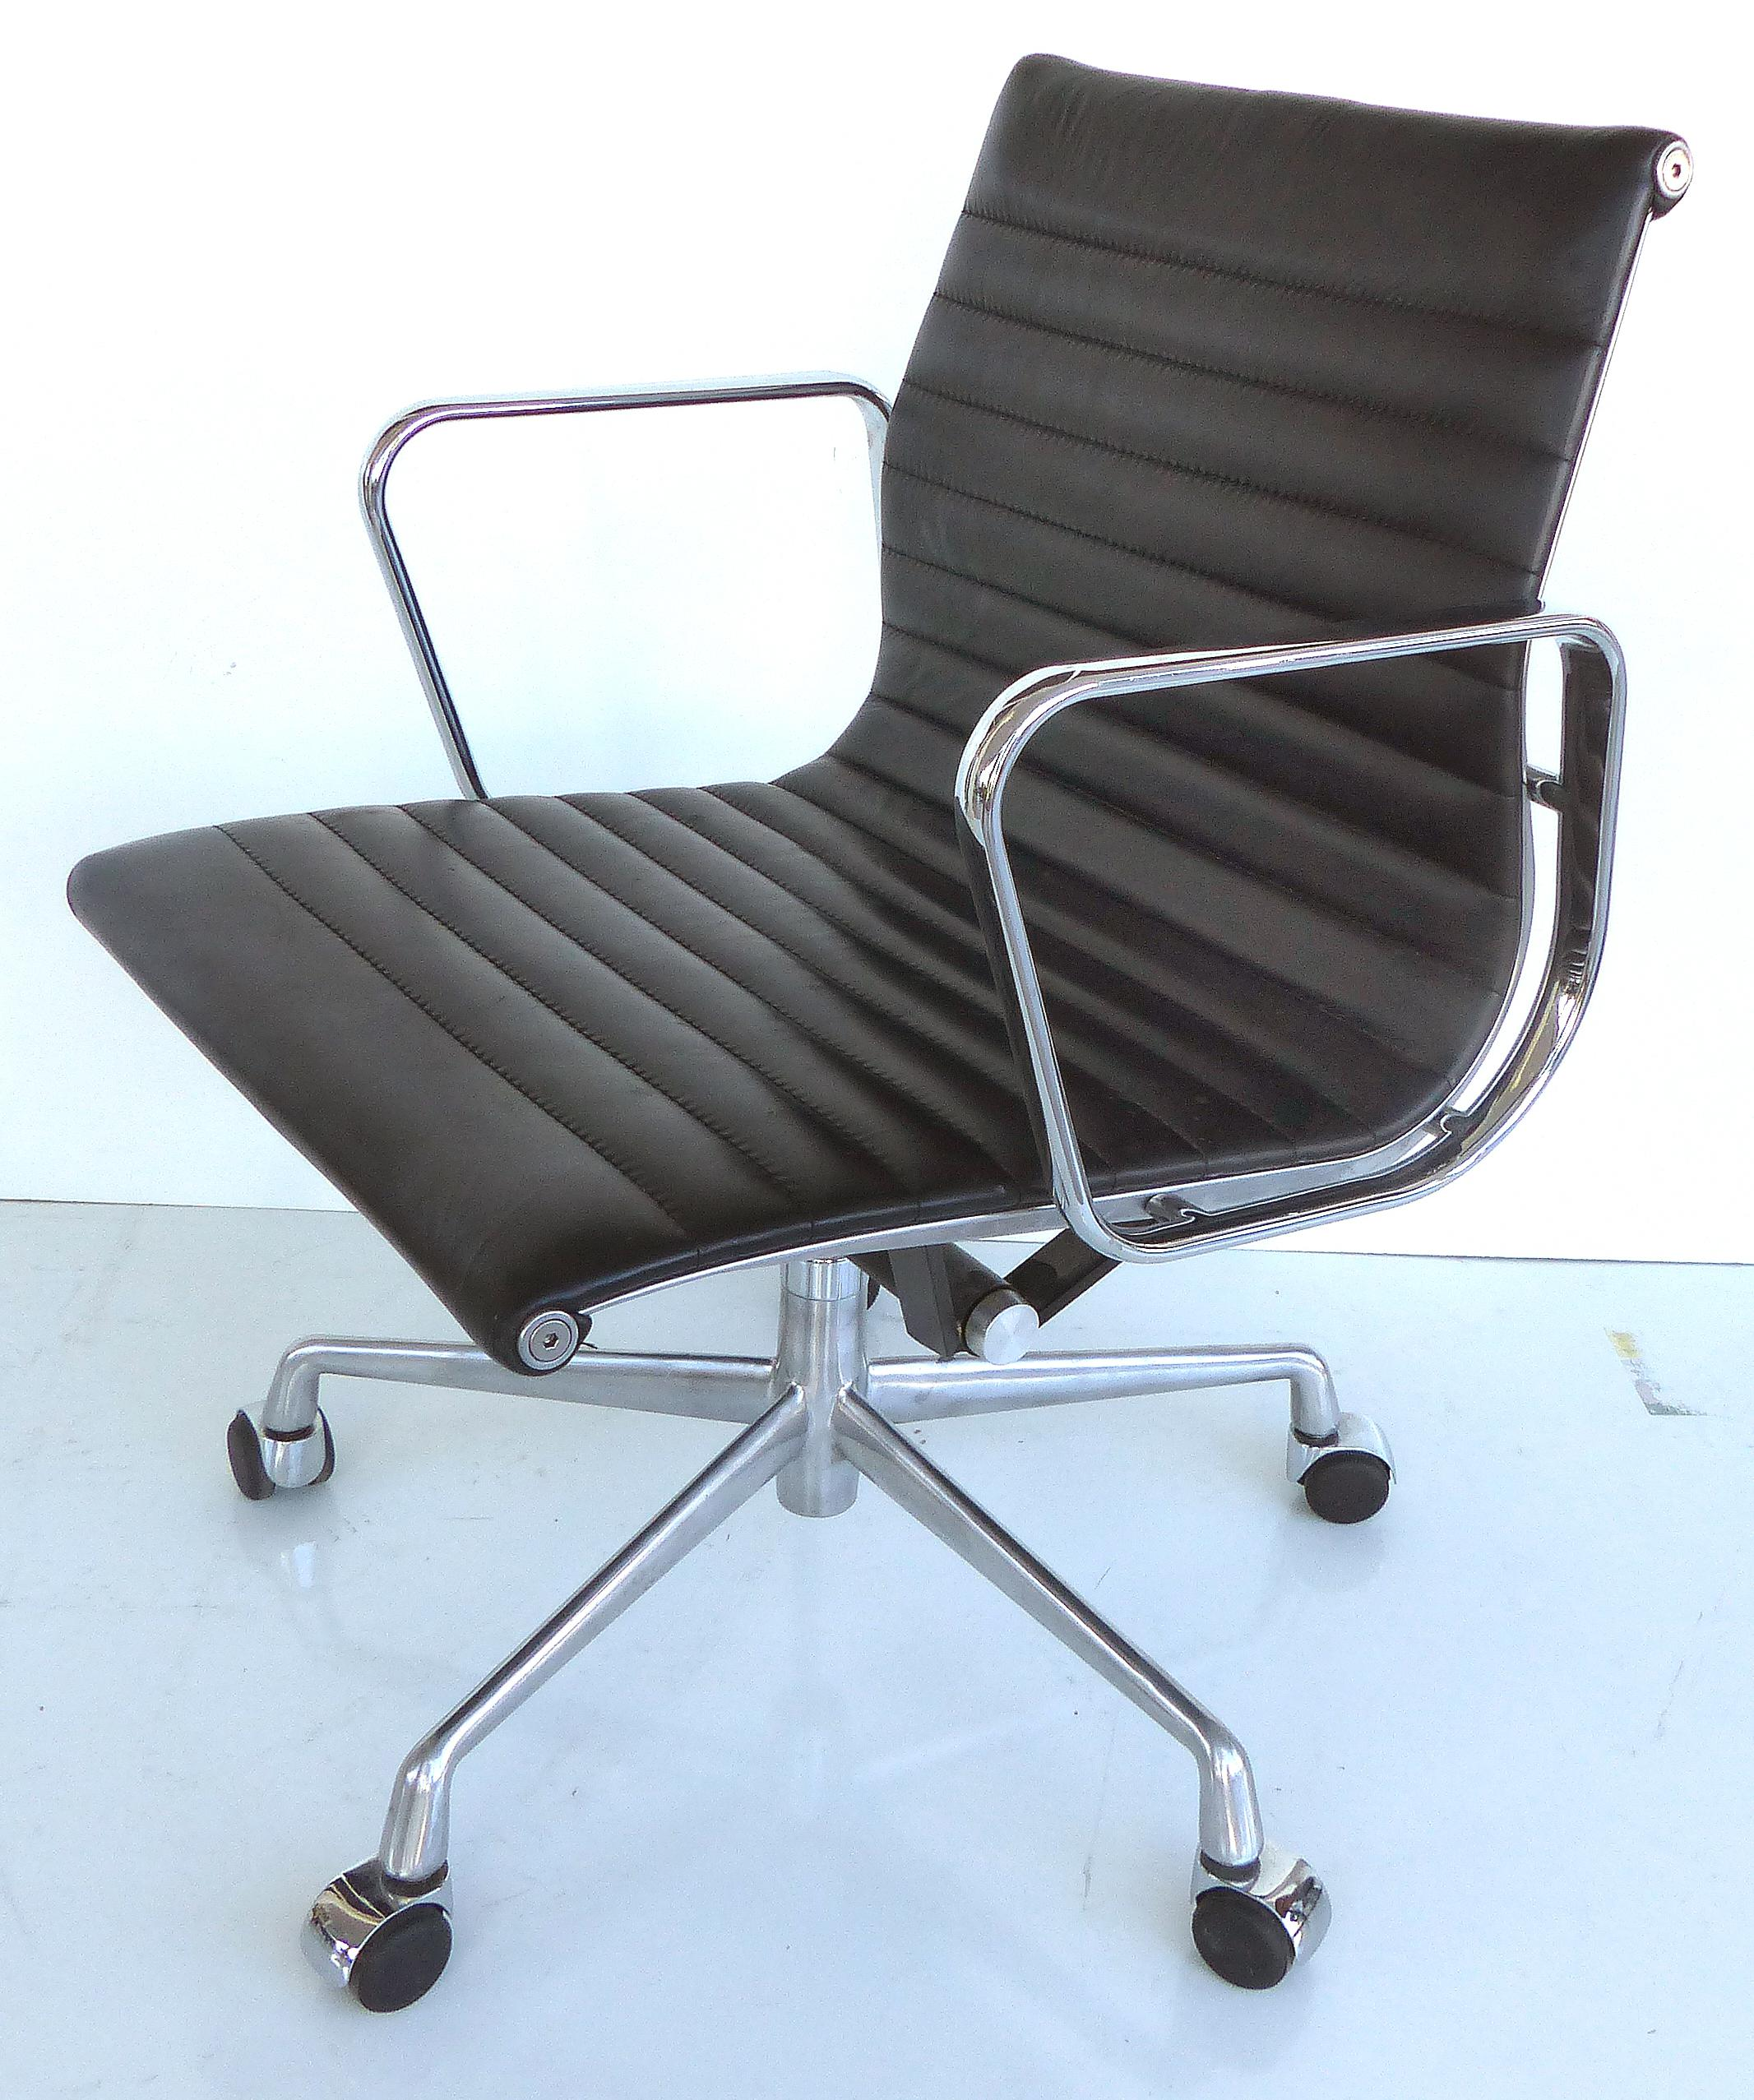 An Eames For Herman Miller Aluminum Group Desk Chair With A Channeled  Leather Upholstery. Arm